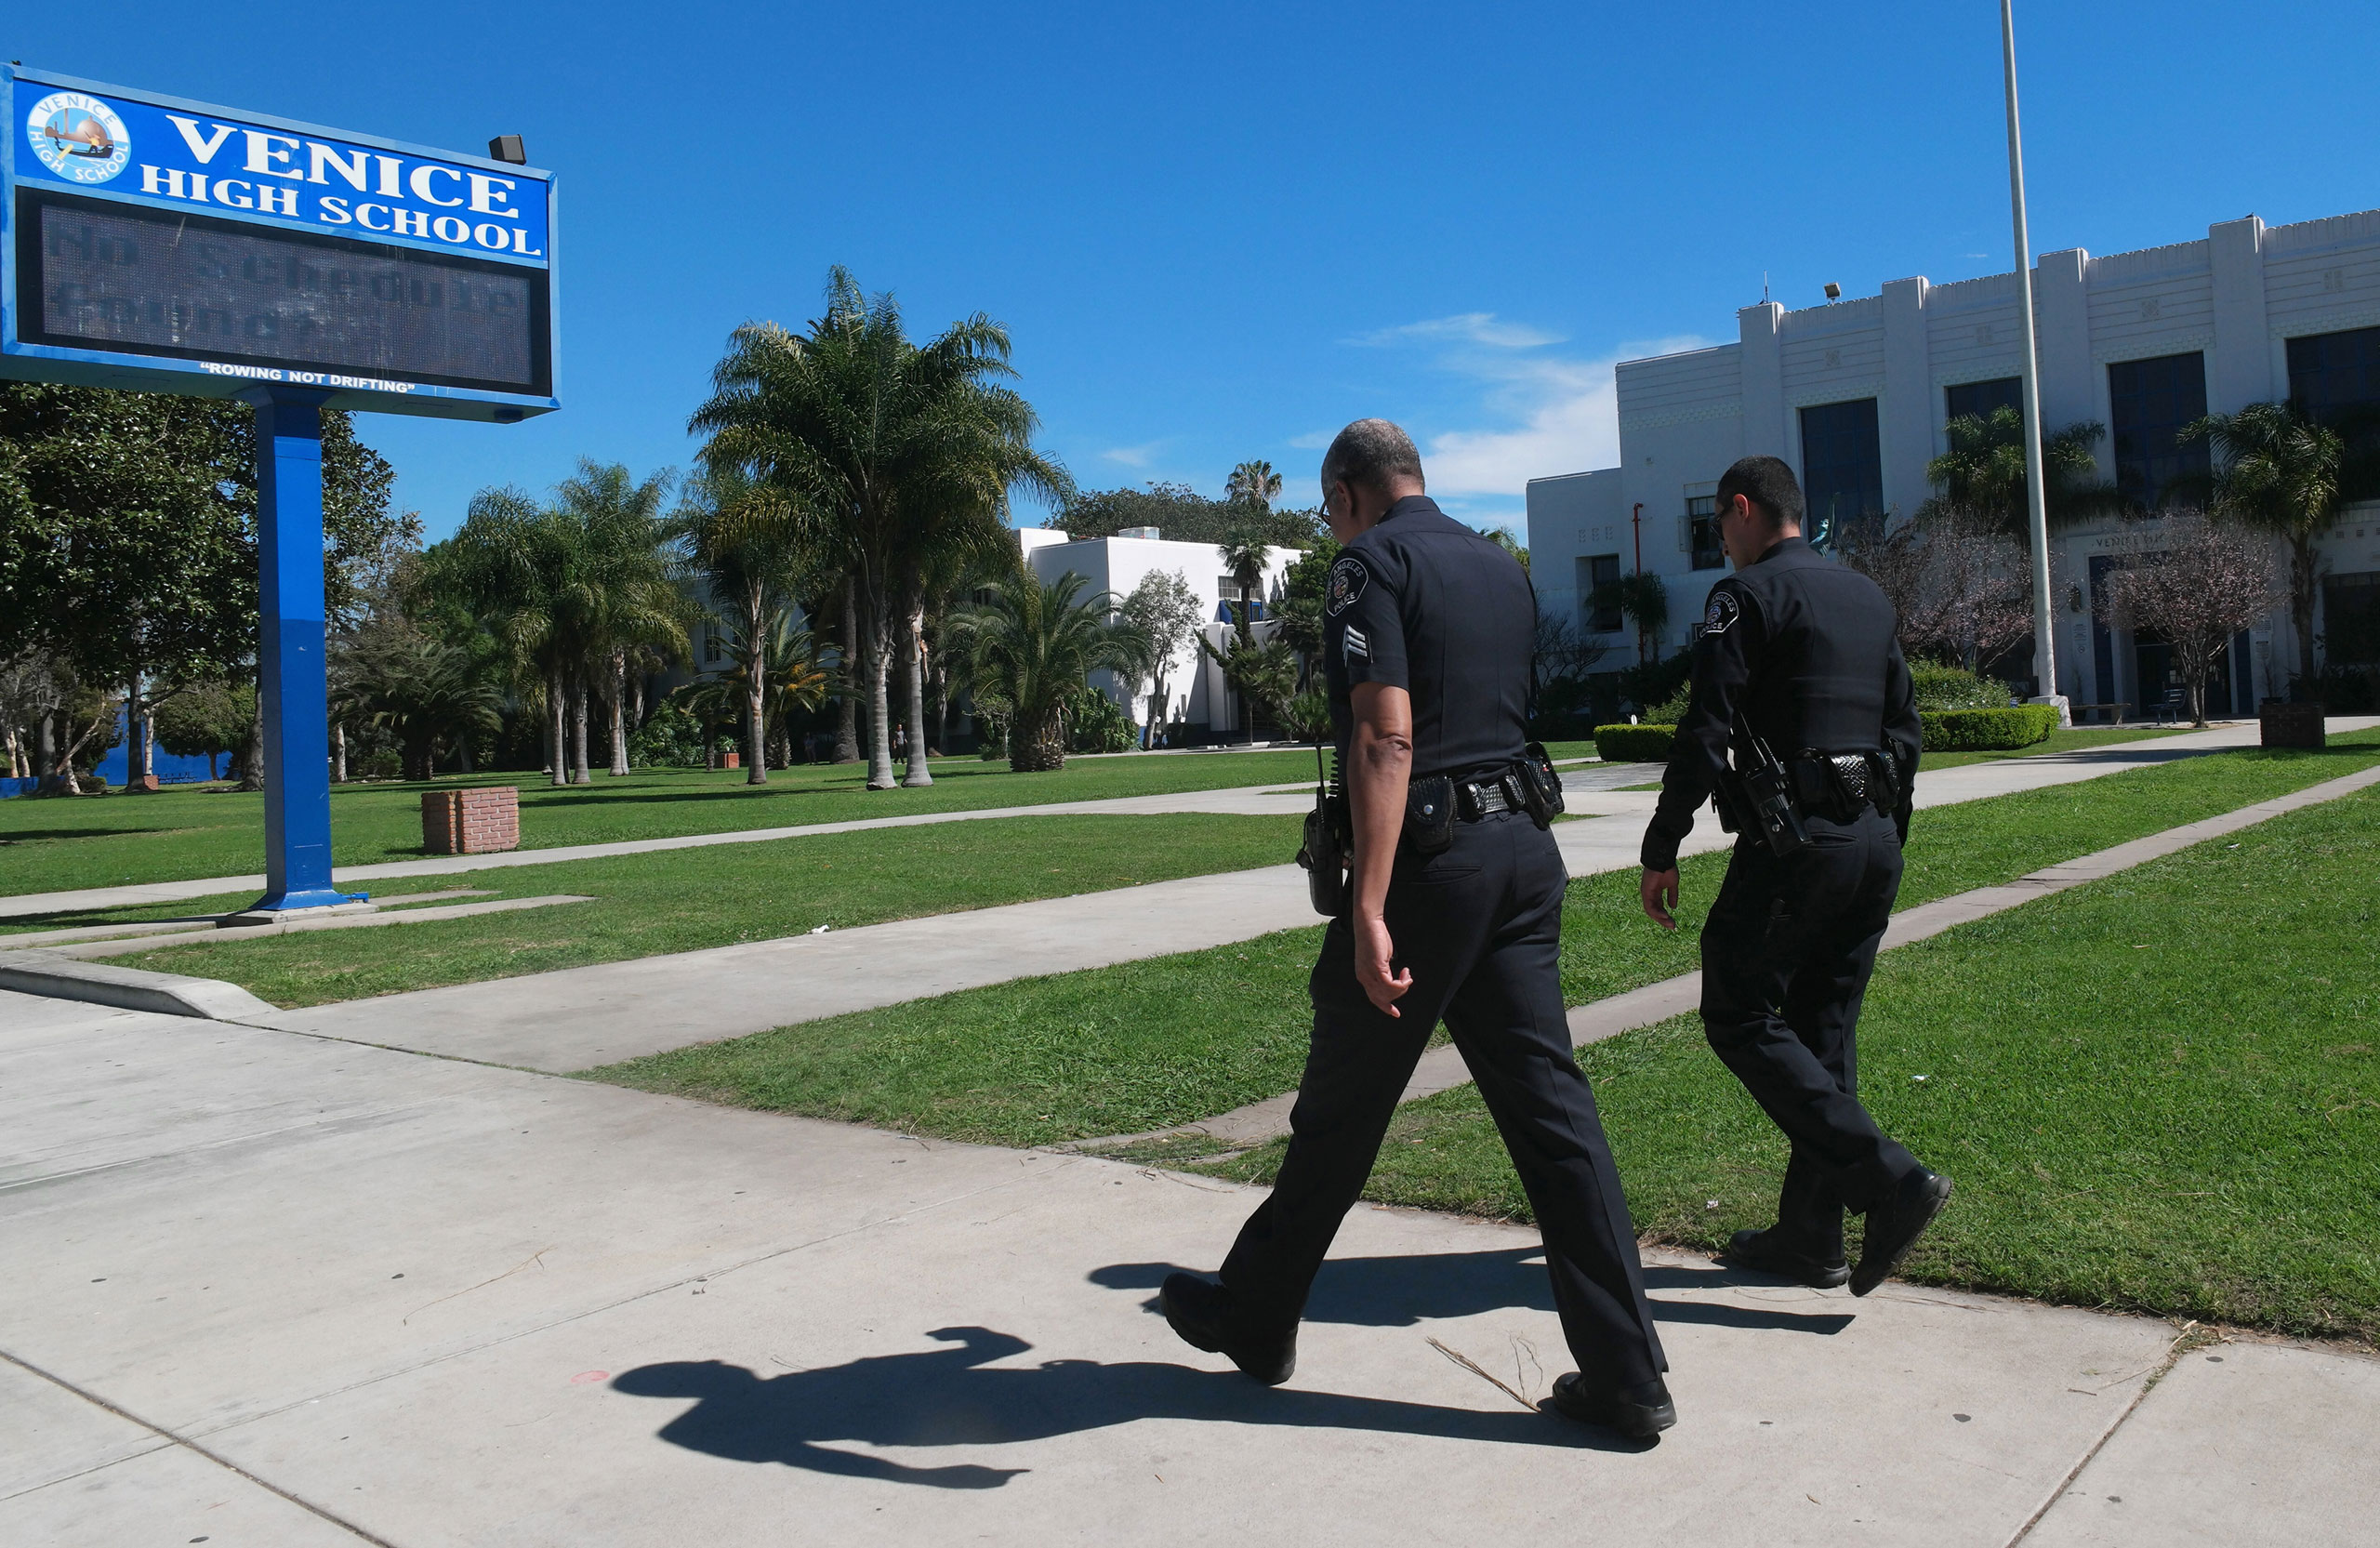 Police officers walk in front of Venice High School, where they are investigating allegations of sexual assaults centered on students, in Los Angeles, March 13, 2015.